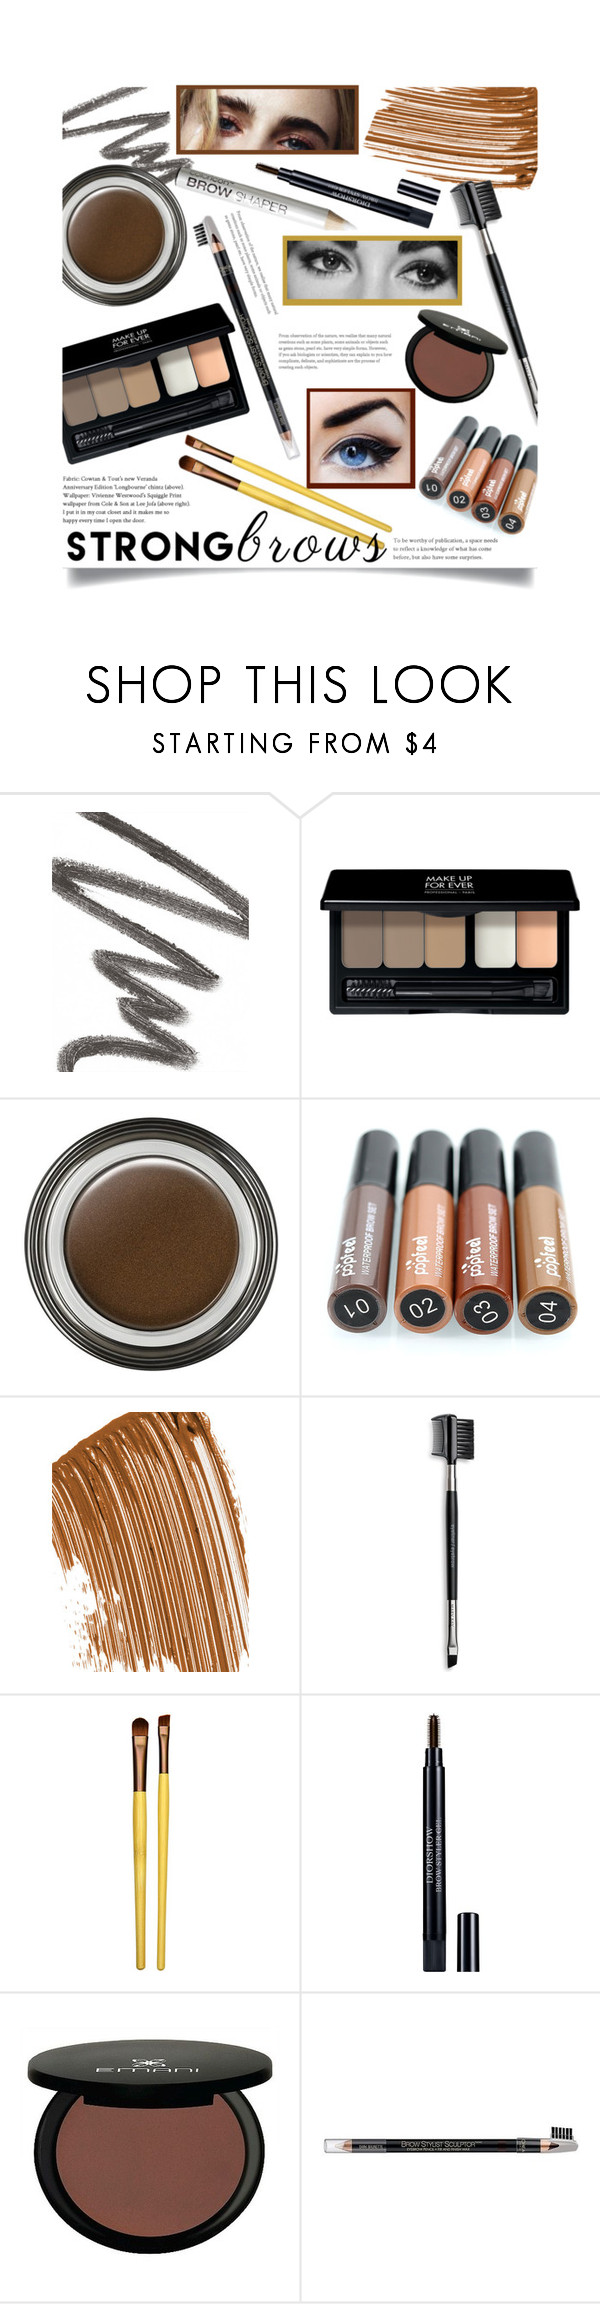 Strong Brows Join my group! Mary kay, armani, Brows